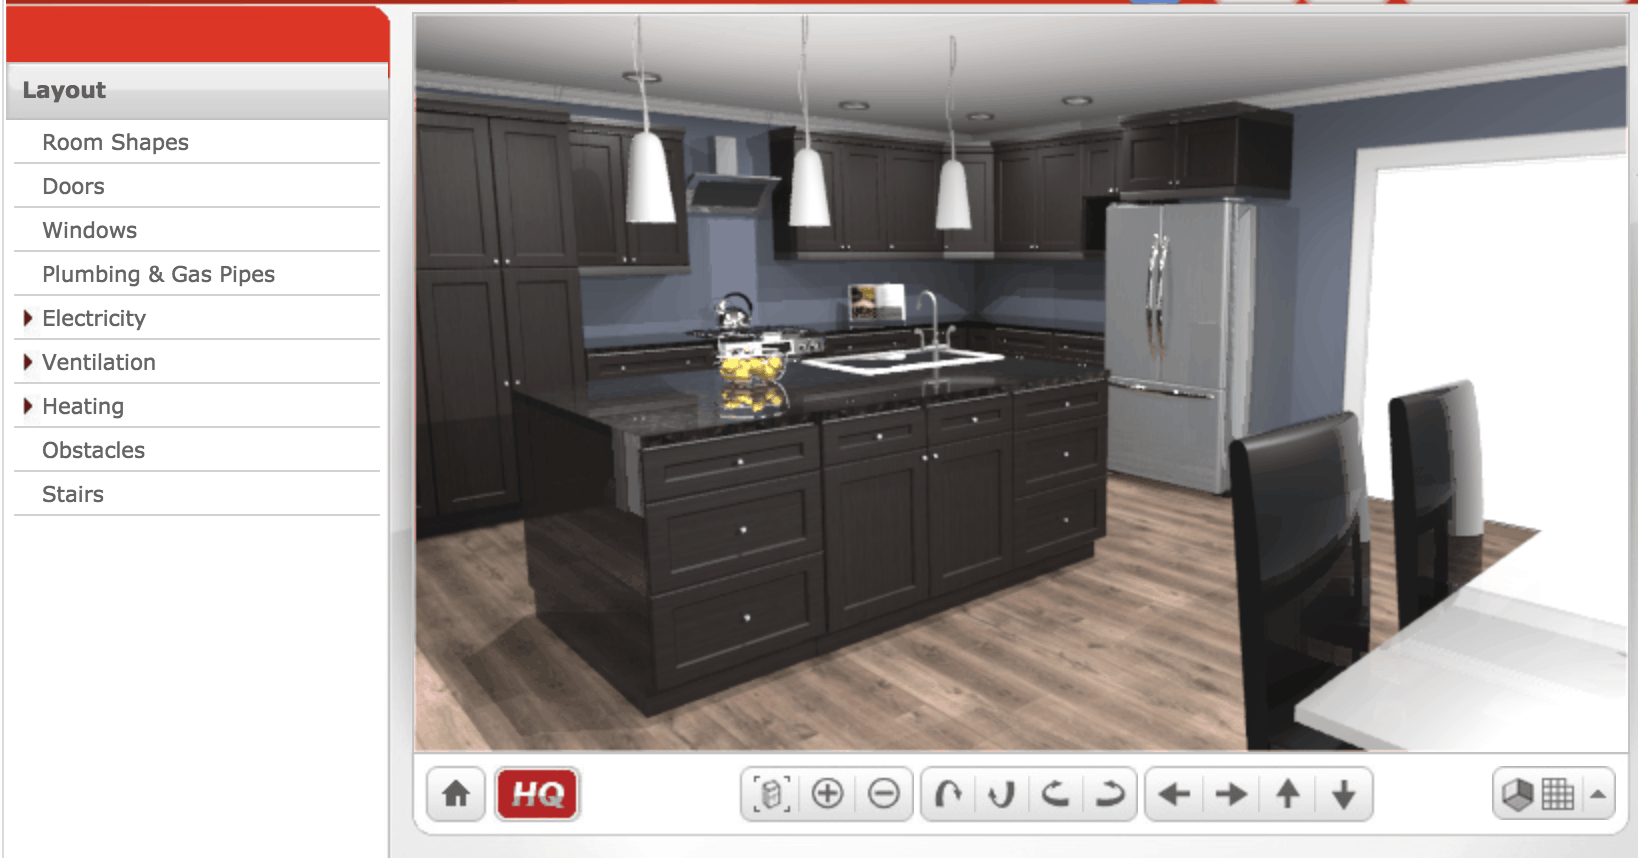 16 Best Online Kitchen Design Software Options (Free & Paid)